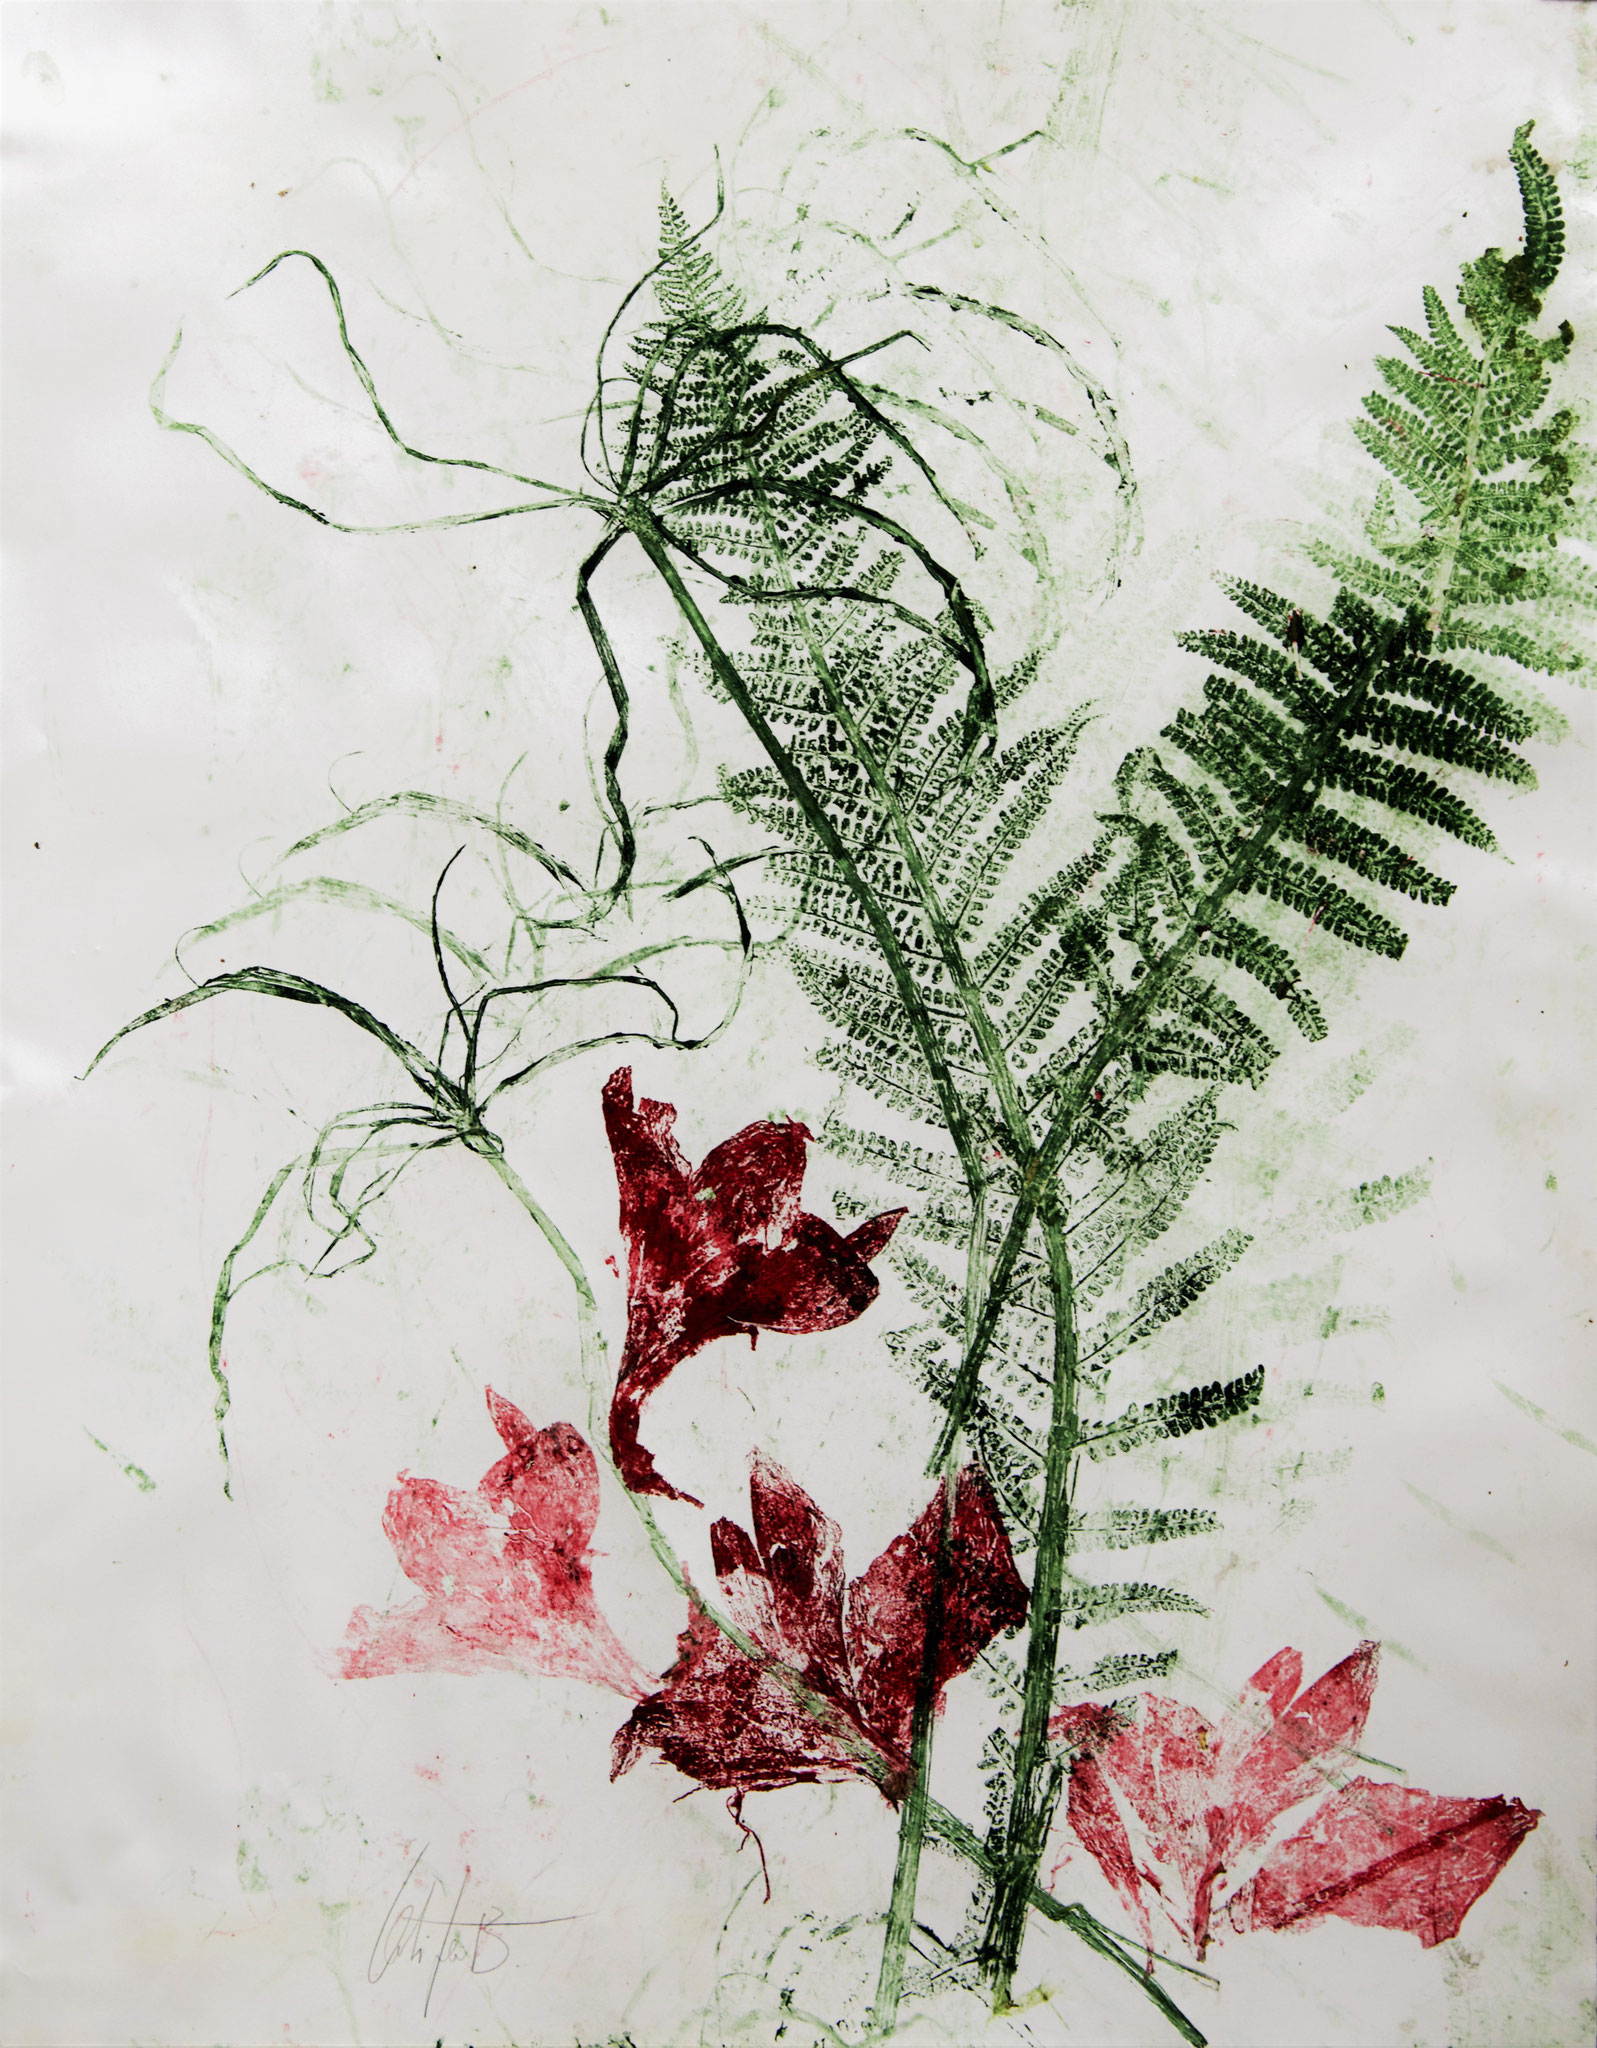 Monotype Latifa Bermes